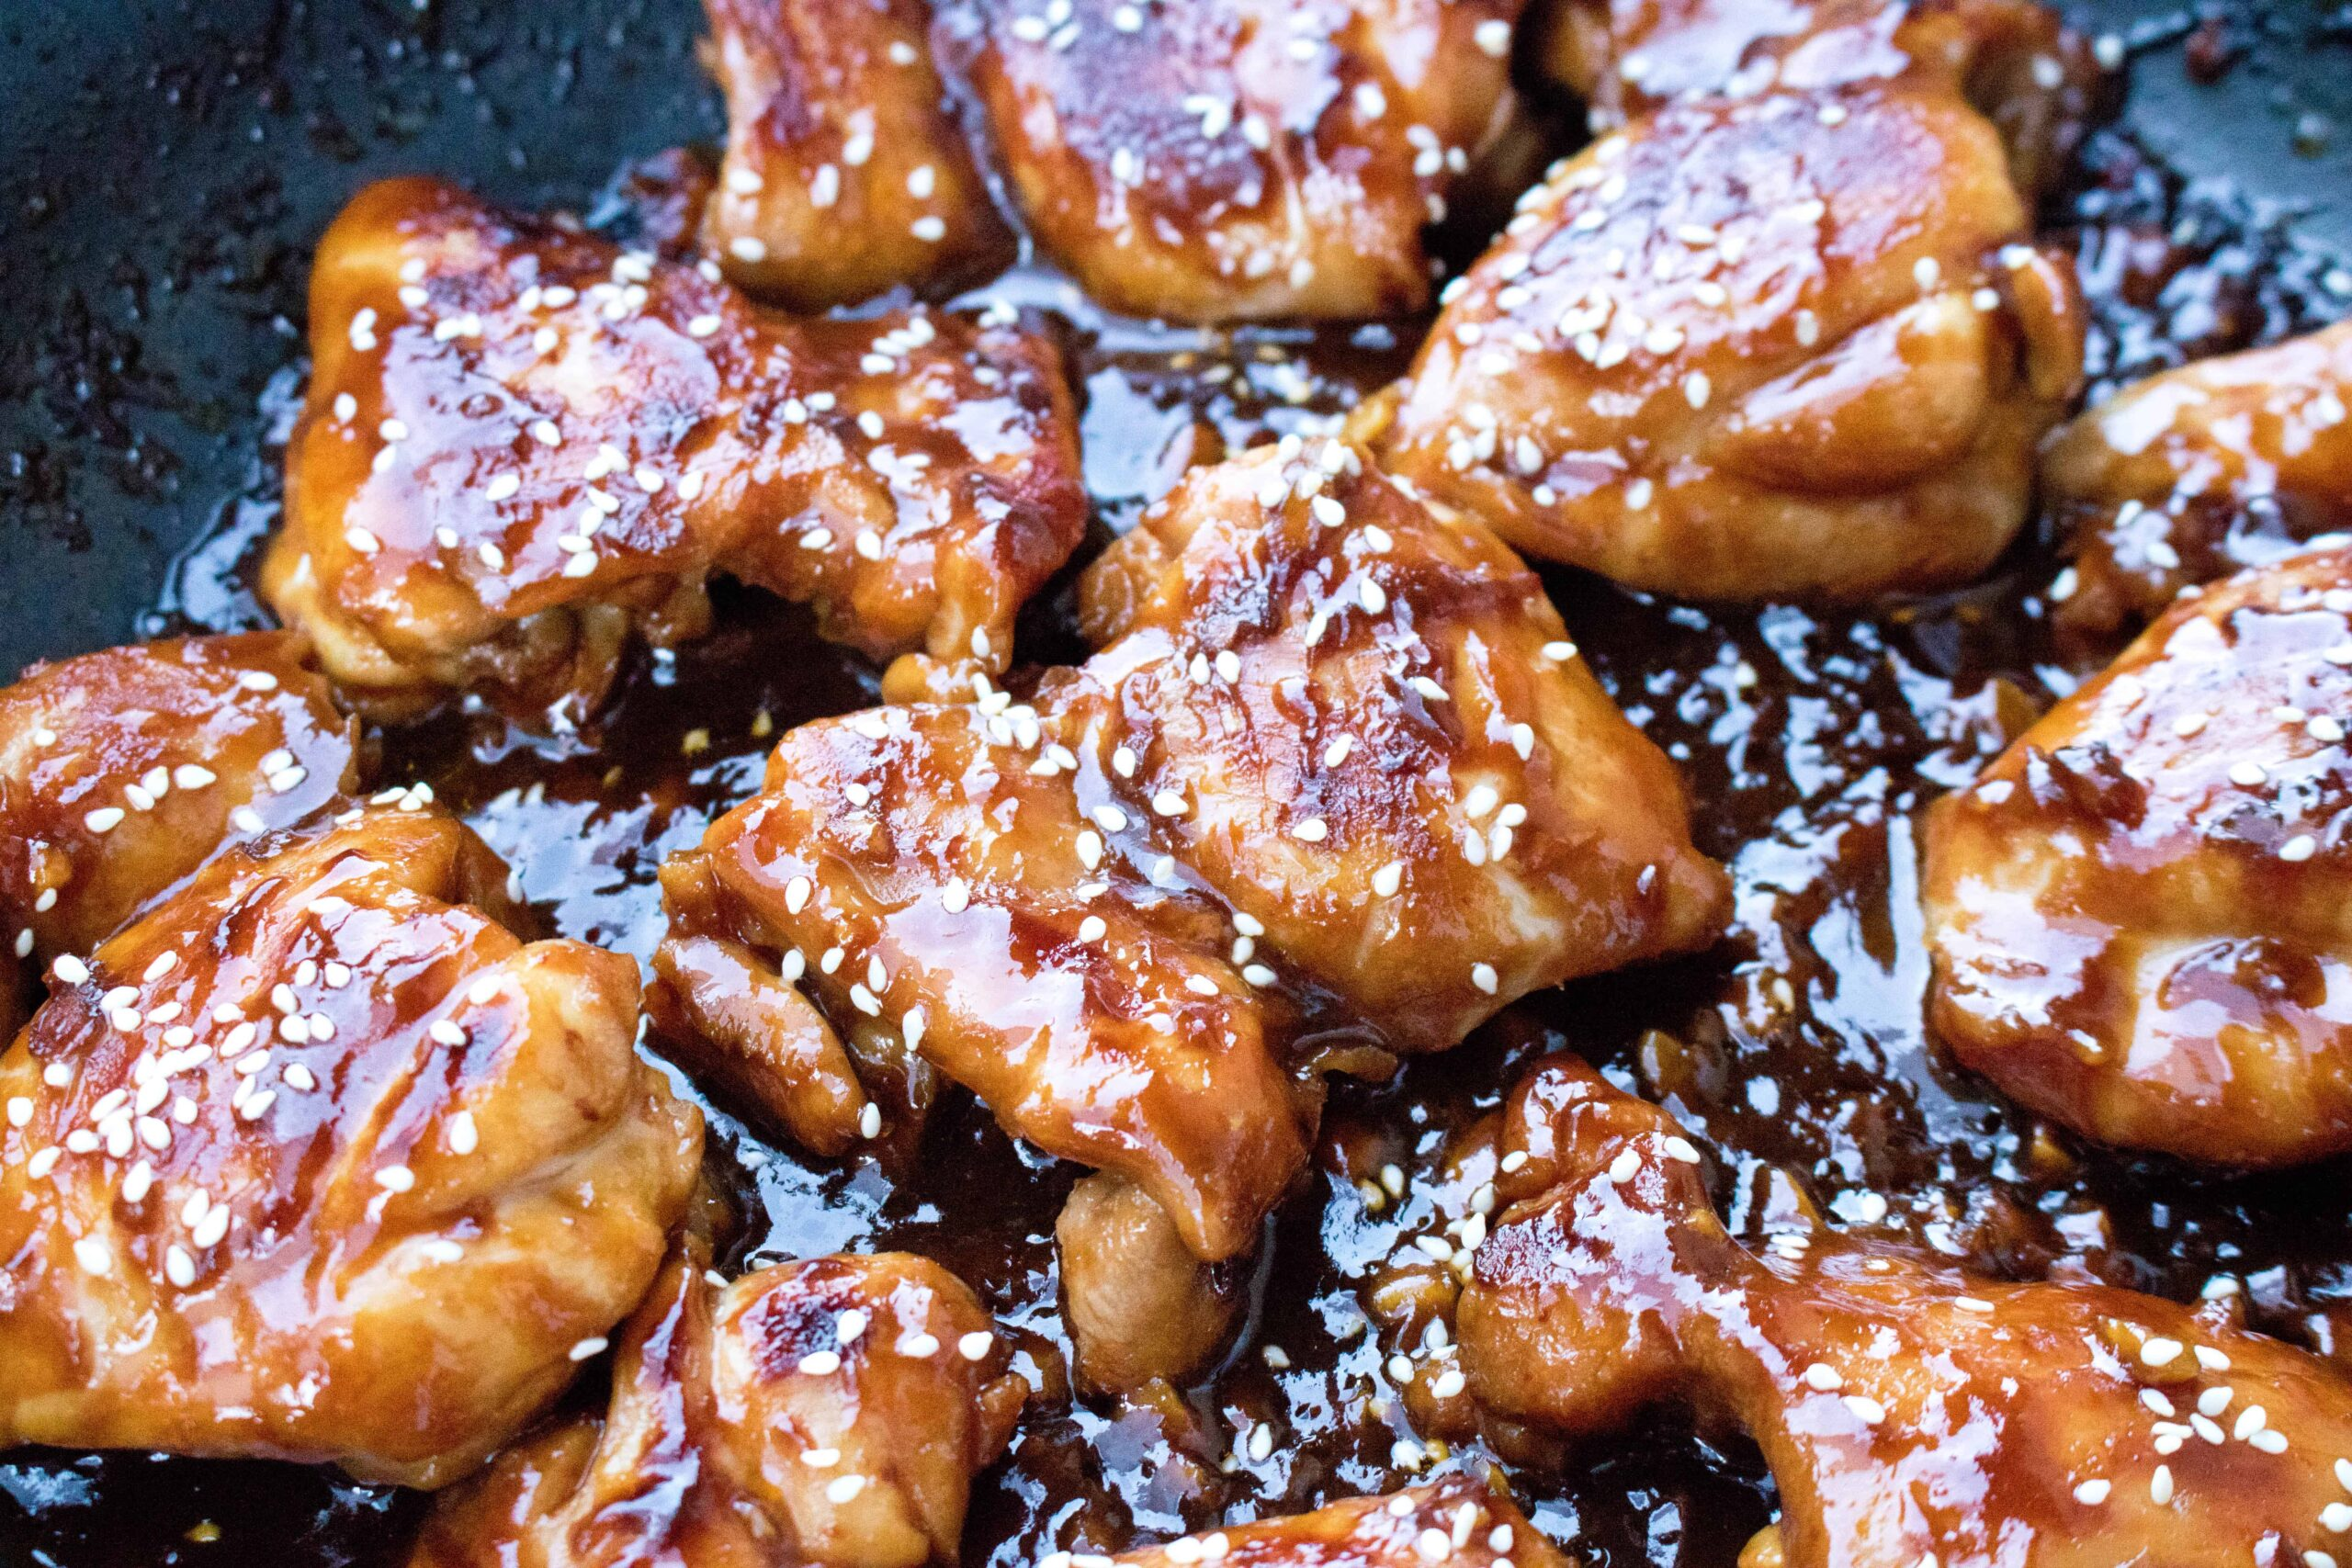 A honey, hoisin, and Sriracha sauce make these Sweet and Spicy Sriracha Chicken Thighs exactly that: a little sweet and a little spicy and also a whole lot easy!